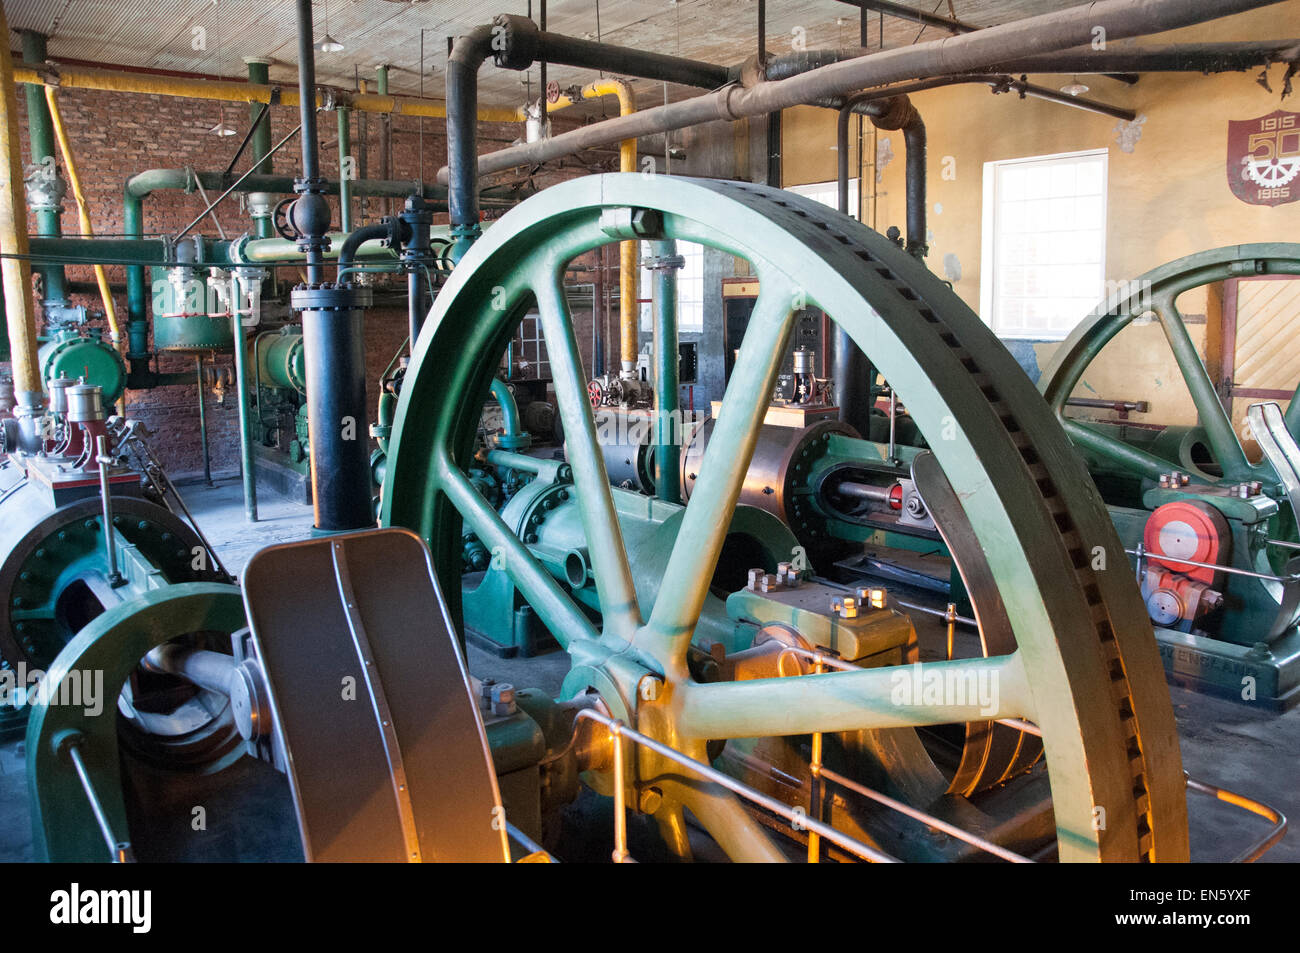 Veteran refrigeration plant preserved at The Singular Hotel Patagonia, a former meatworks outside Puerto Natales - Stock Image